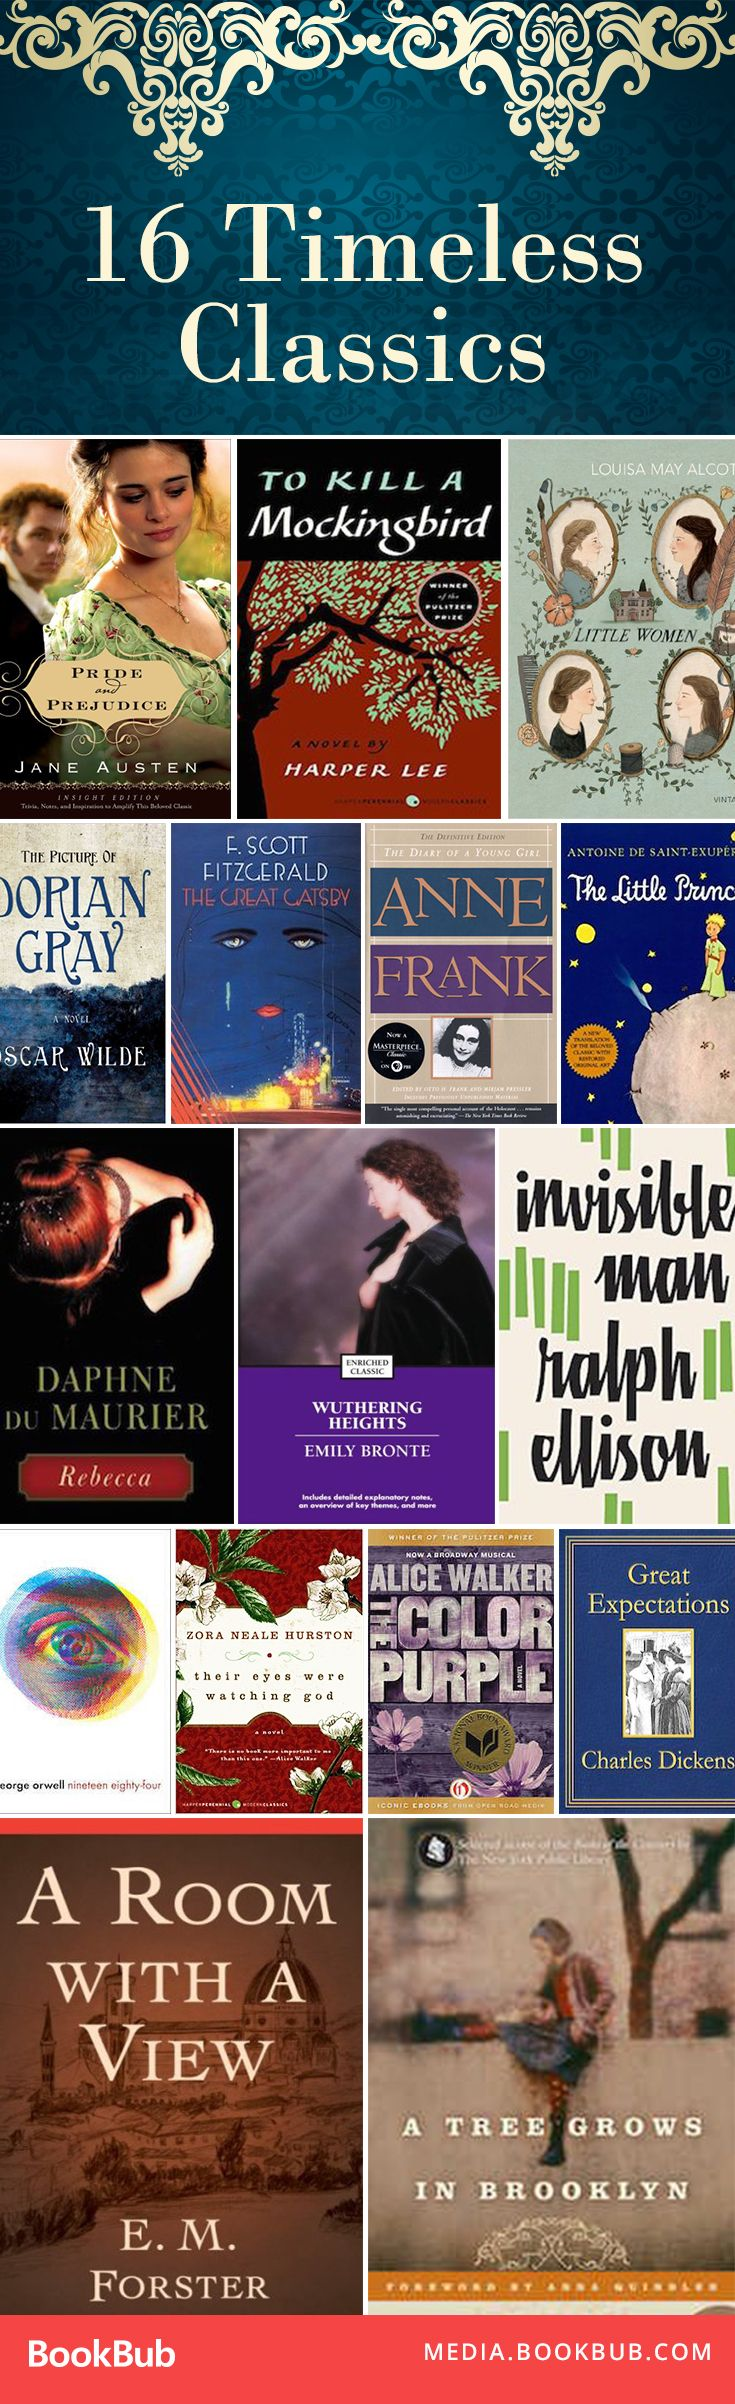 Trying to do a 2017 book challenge? Take a look at this list of classic books worth reading.